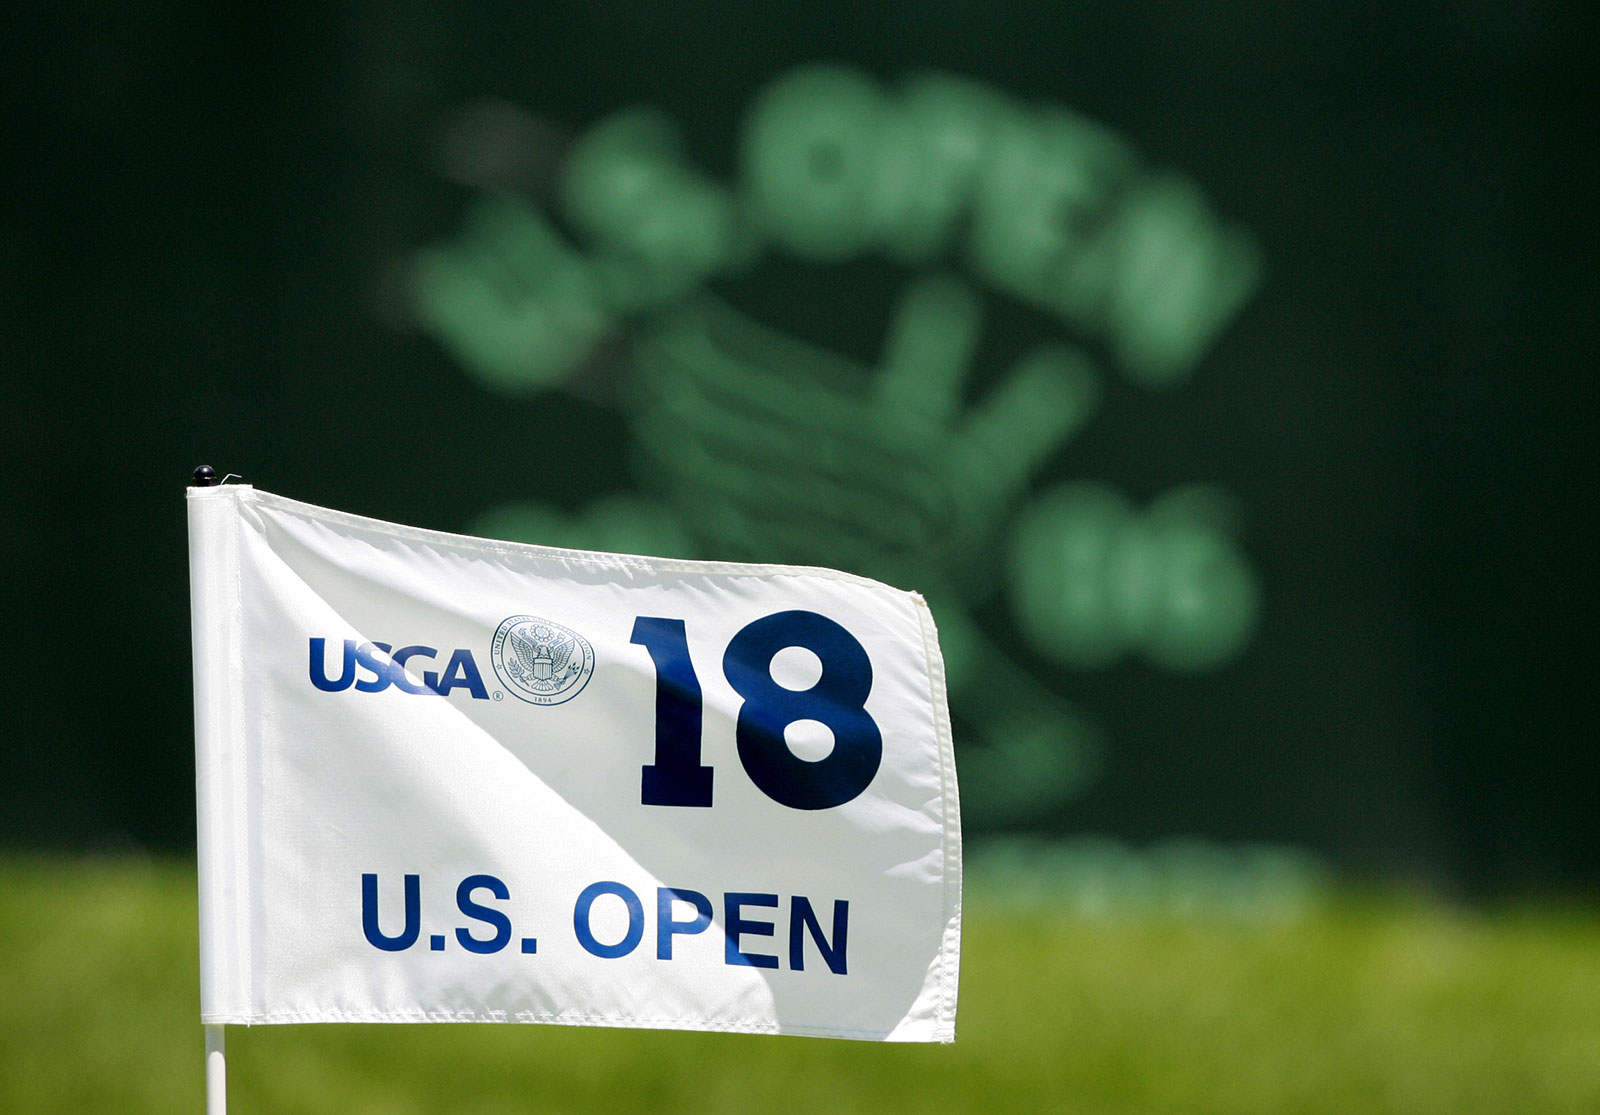 A pin flag is seen on the 18th hole during the 2006 US Open at Winged Foot Golf Club in Mamaroneck, New York. The club is scheduled to host the championship in September without fans.